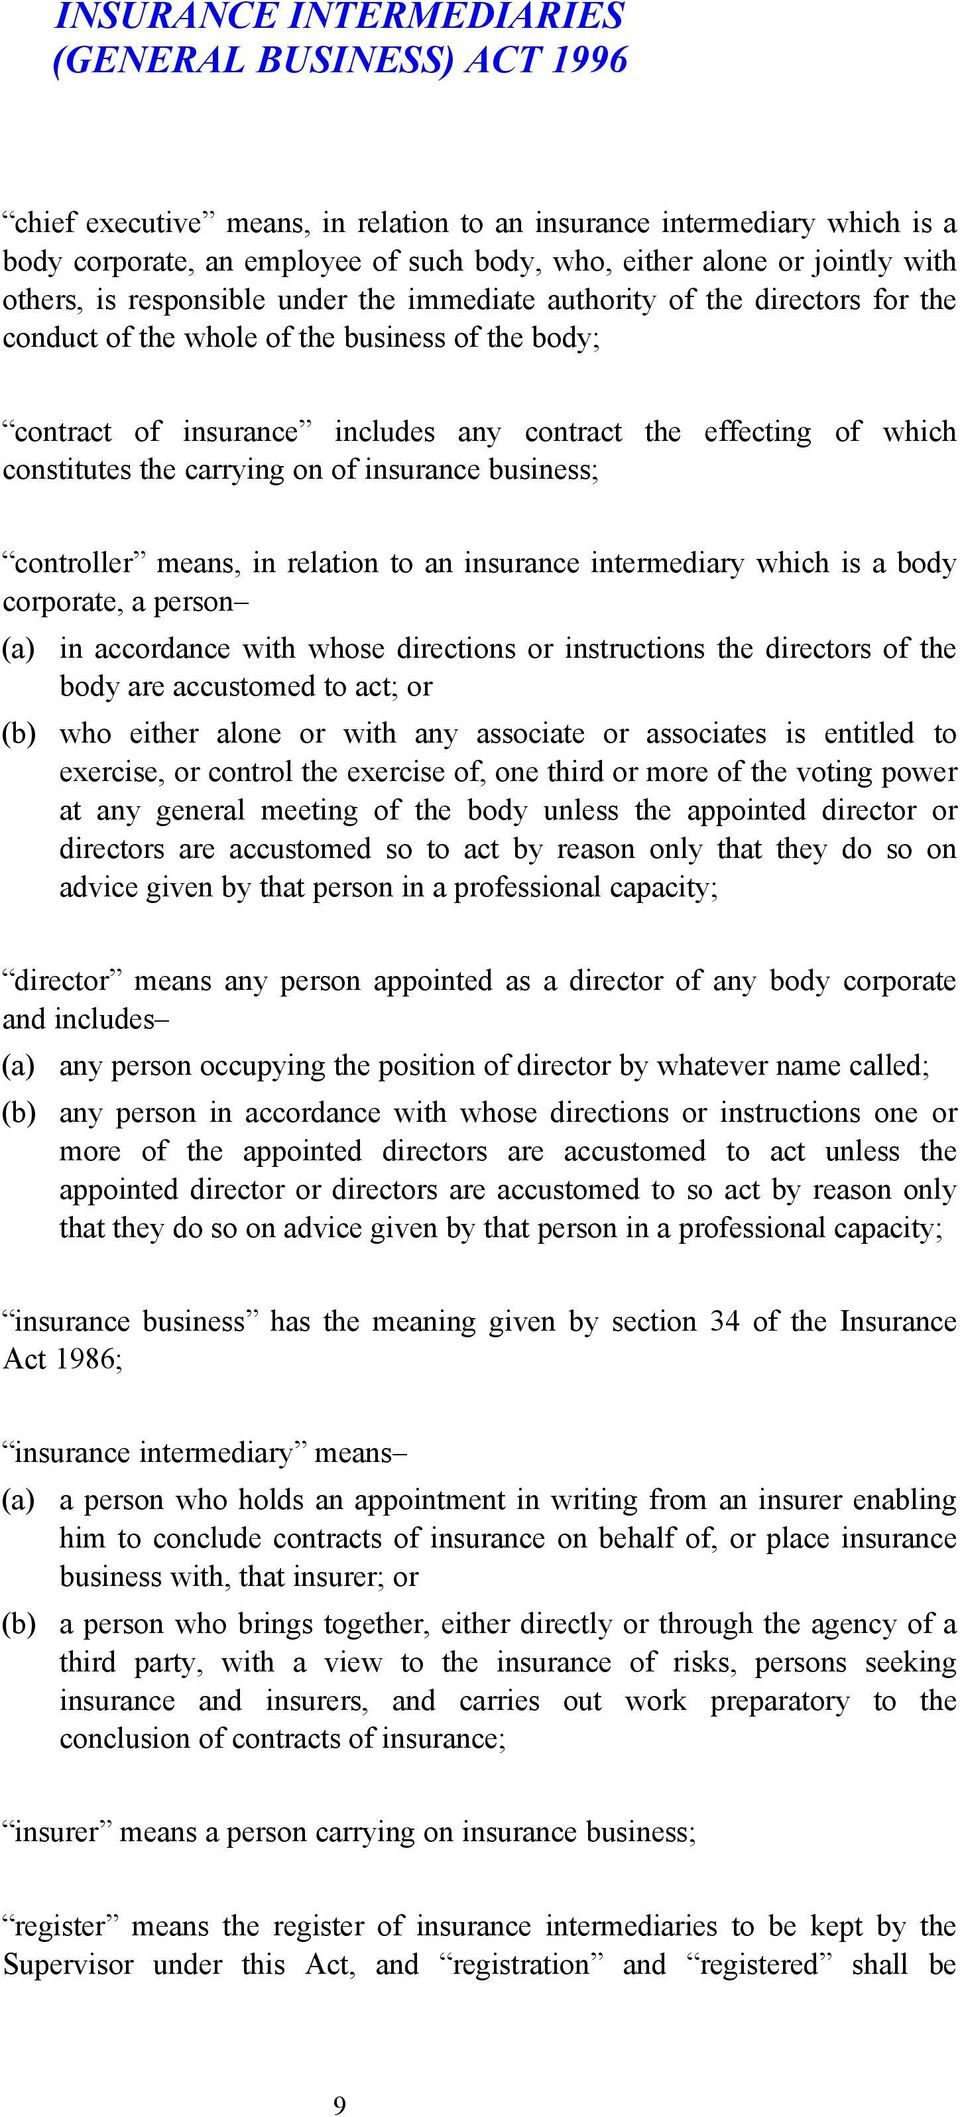 business; controller means, in relation to an insurance intermediary which is a body corporate, a person in accordance with whose directions or instructions the directors of the body are accustomed